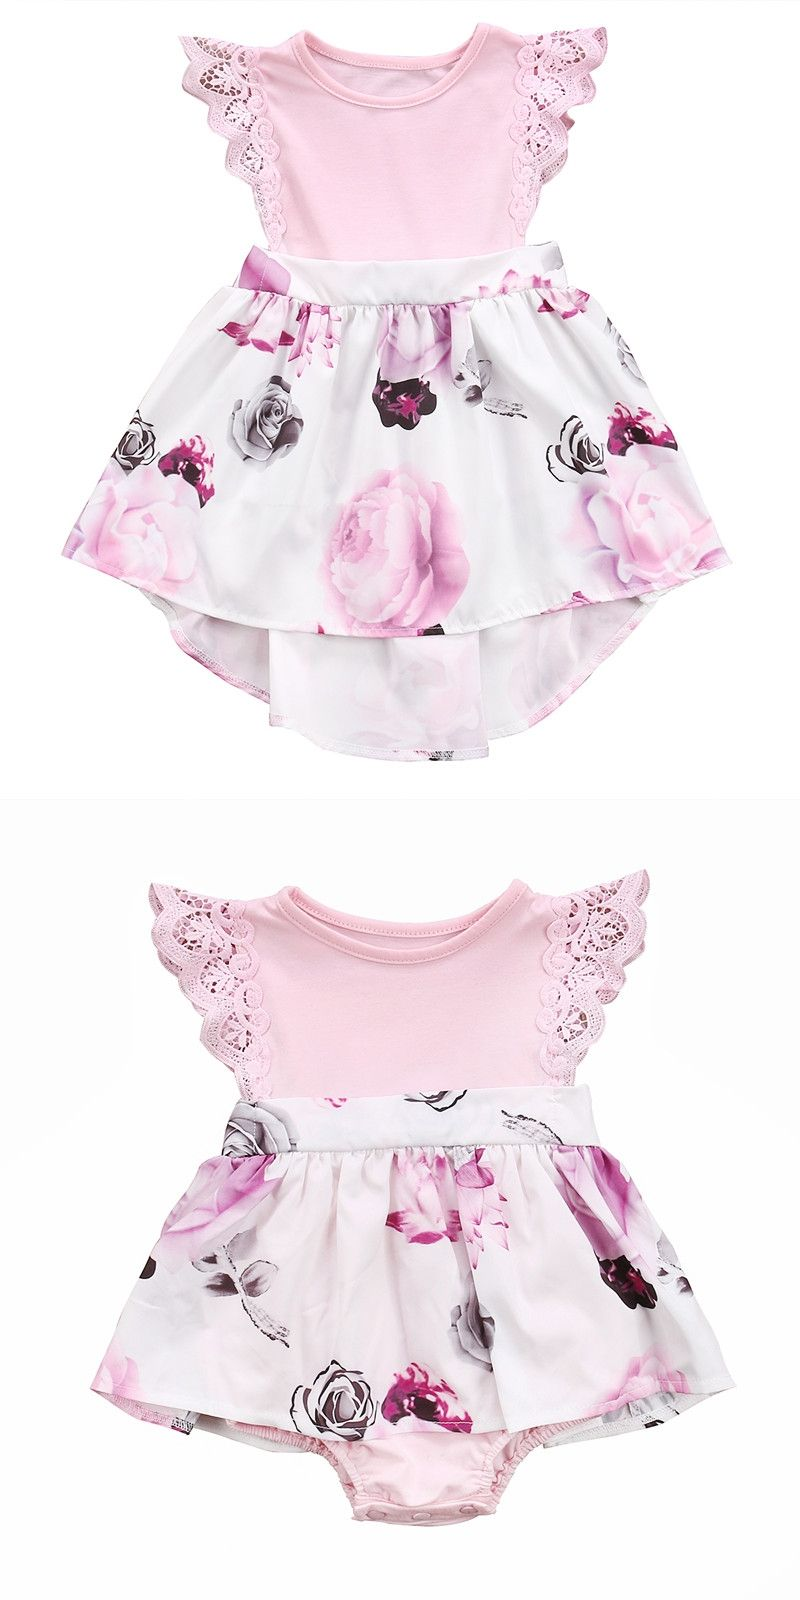 72bf24a0e051 Family Sister Floral Matching Clothing Newborn Baby girls Kids lace Summer Floral  Romper  Dress clothes outfits